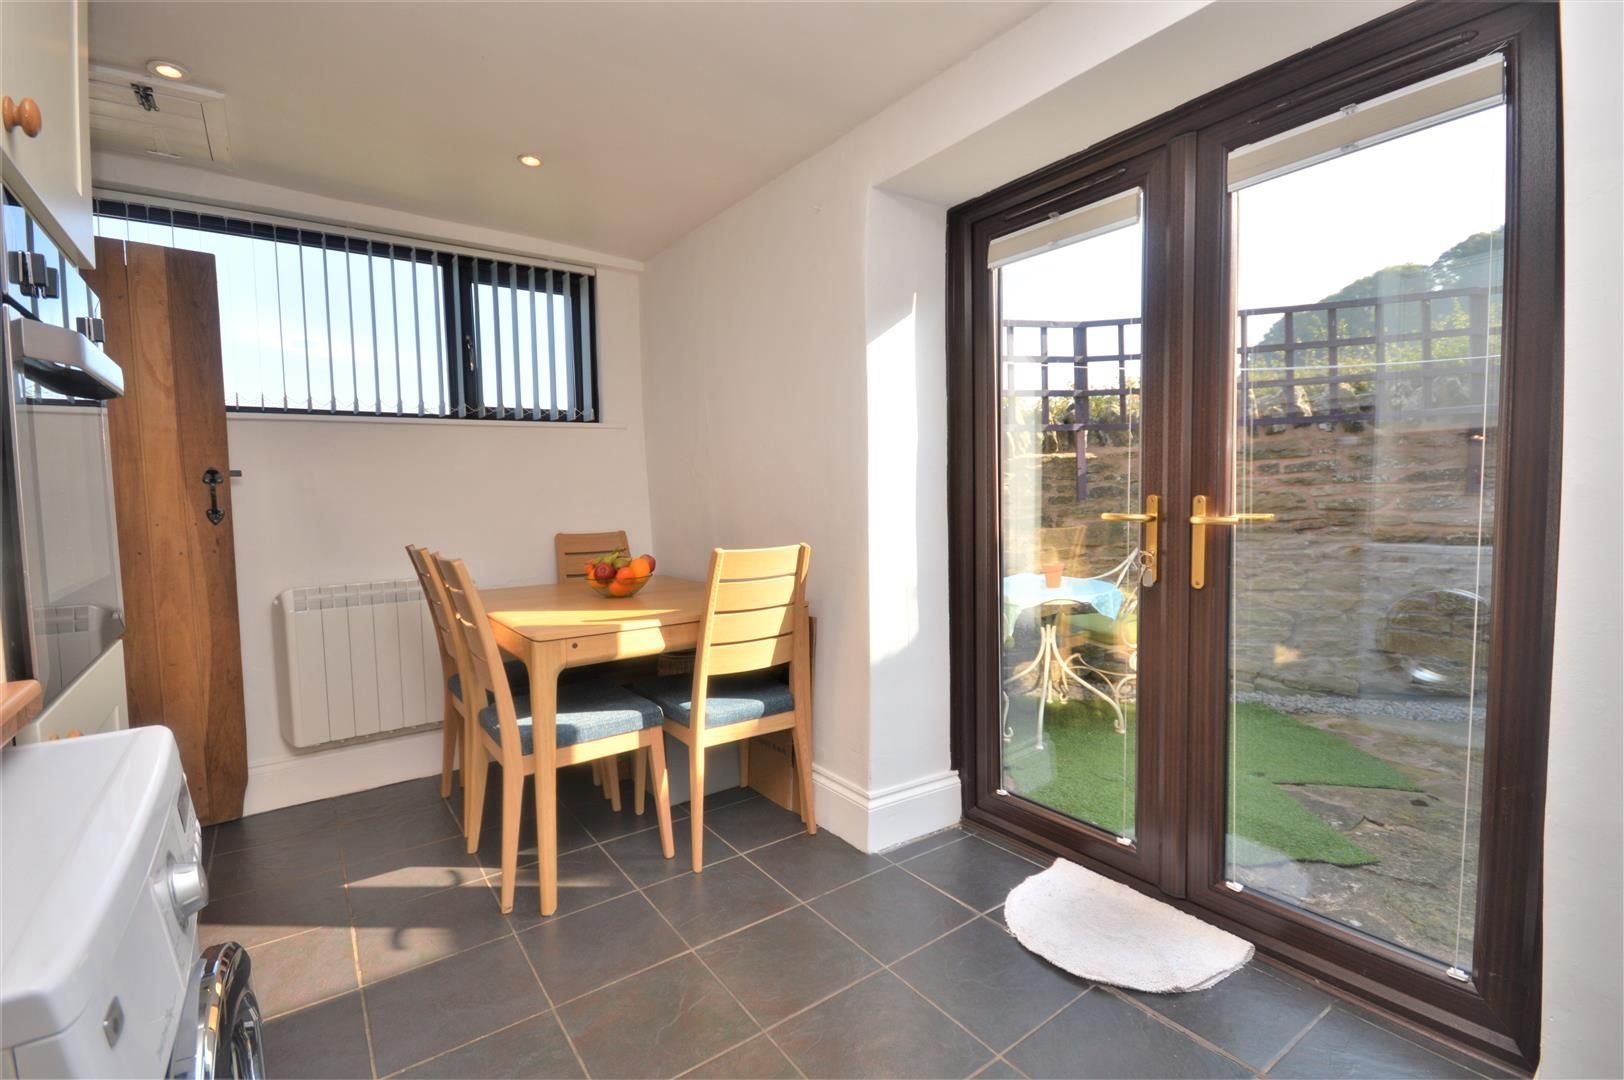 1 bed end-of-terrace for sale in Callow  - Property Image 5